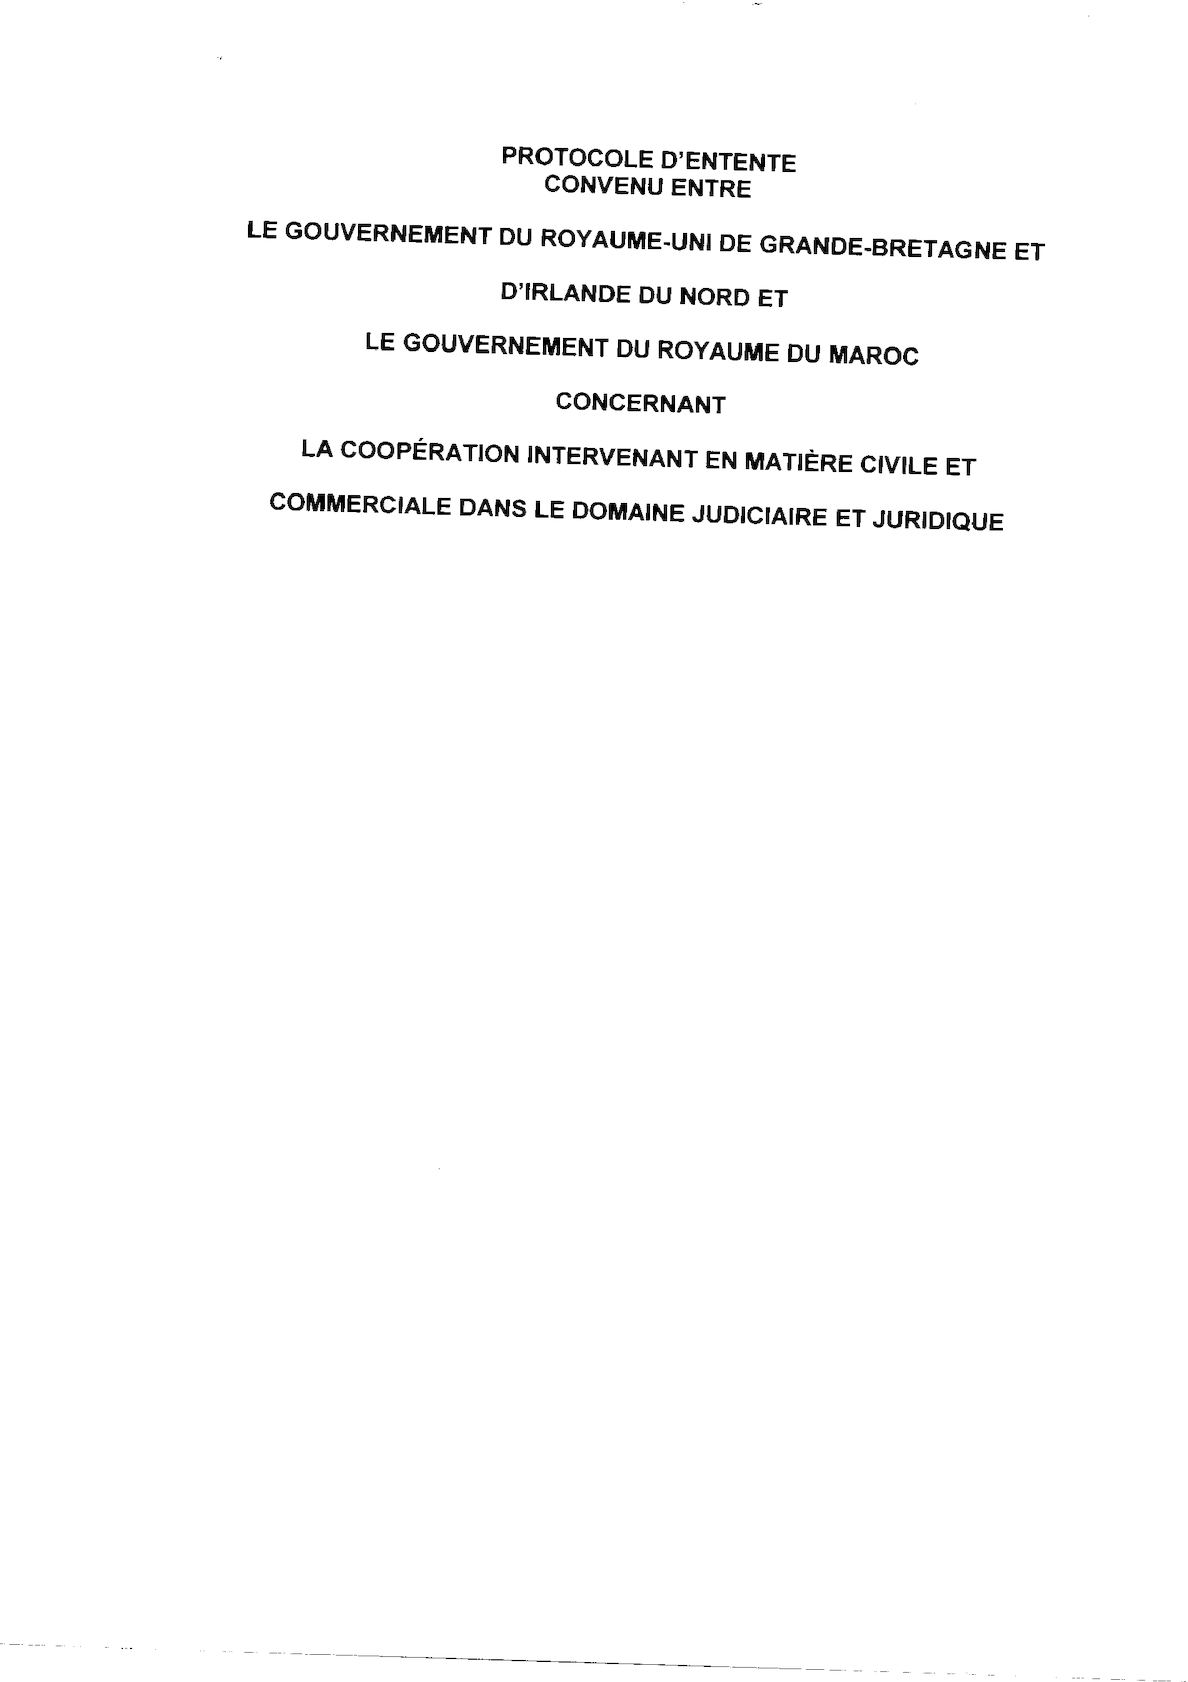 Projets Accords Coopération Judiciaire 2